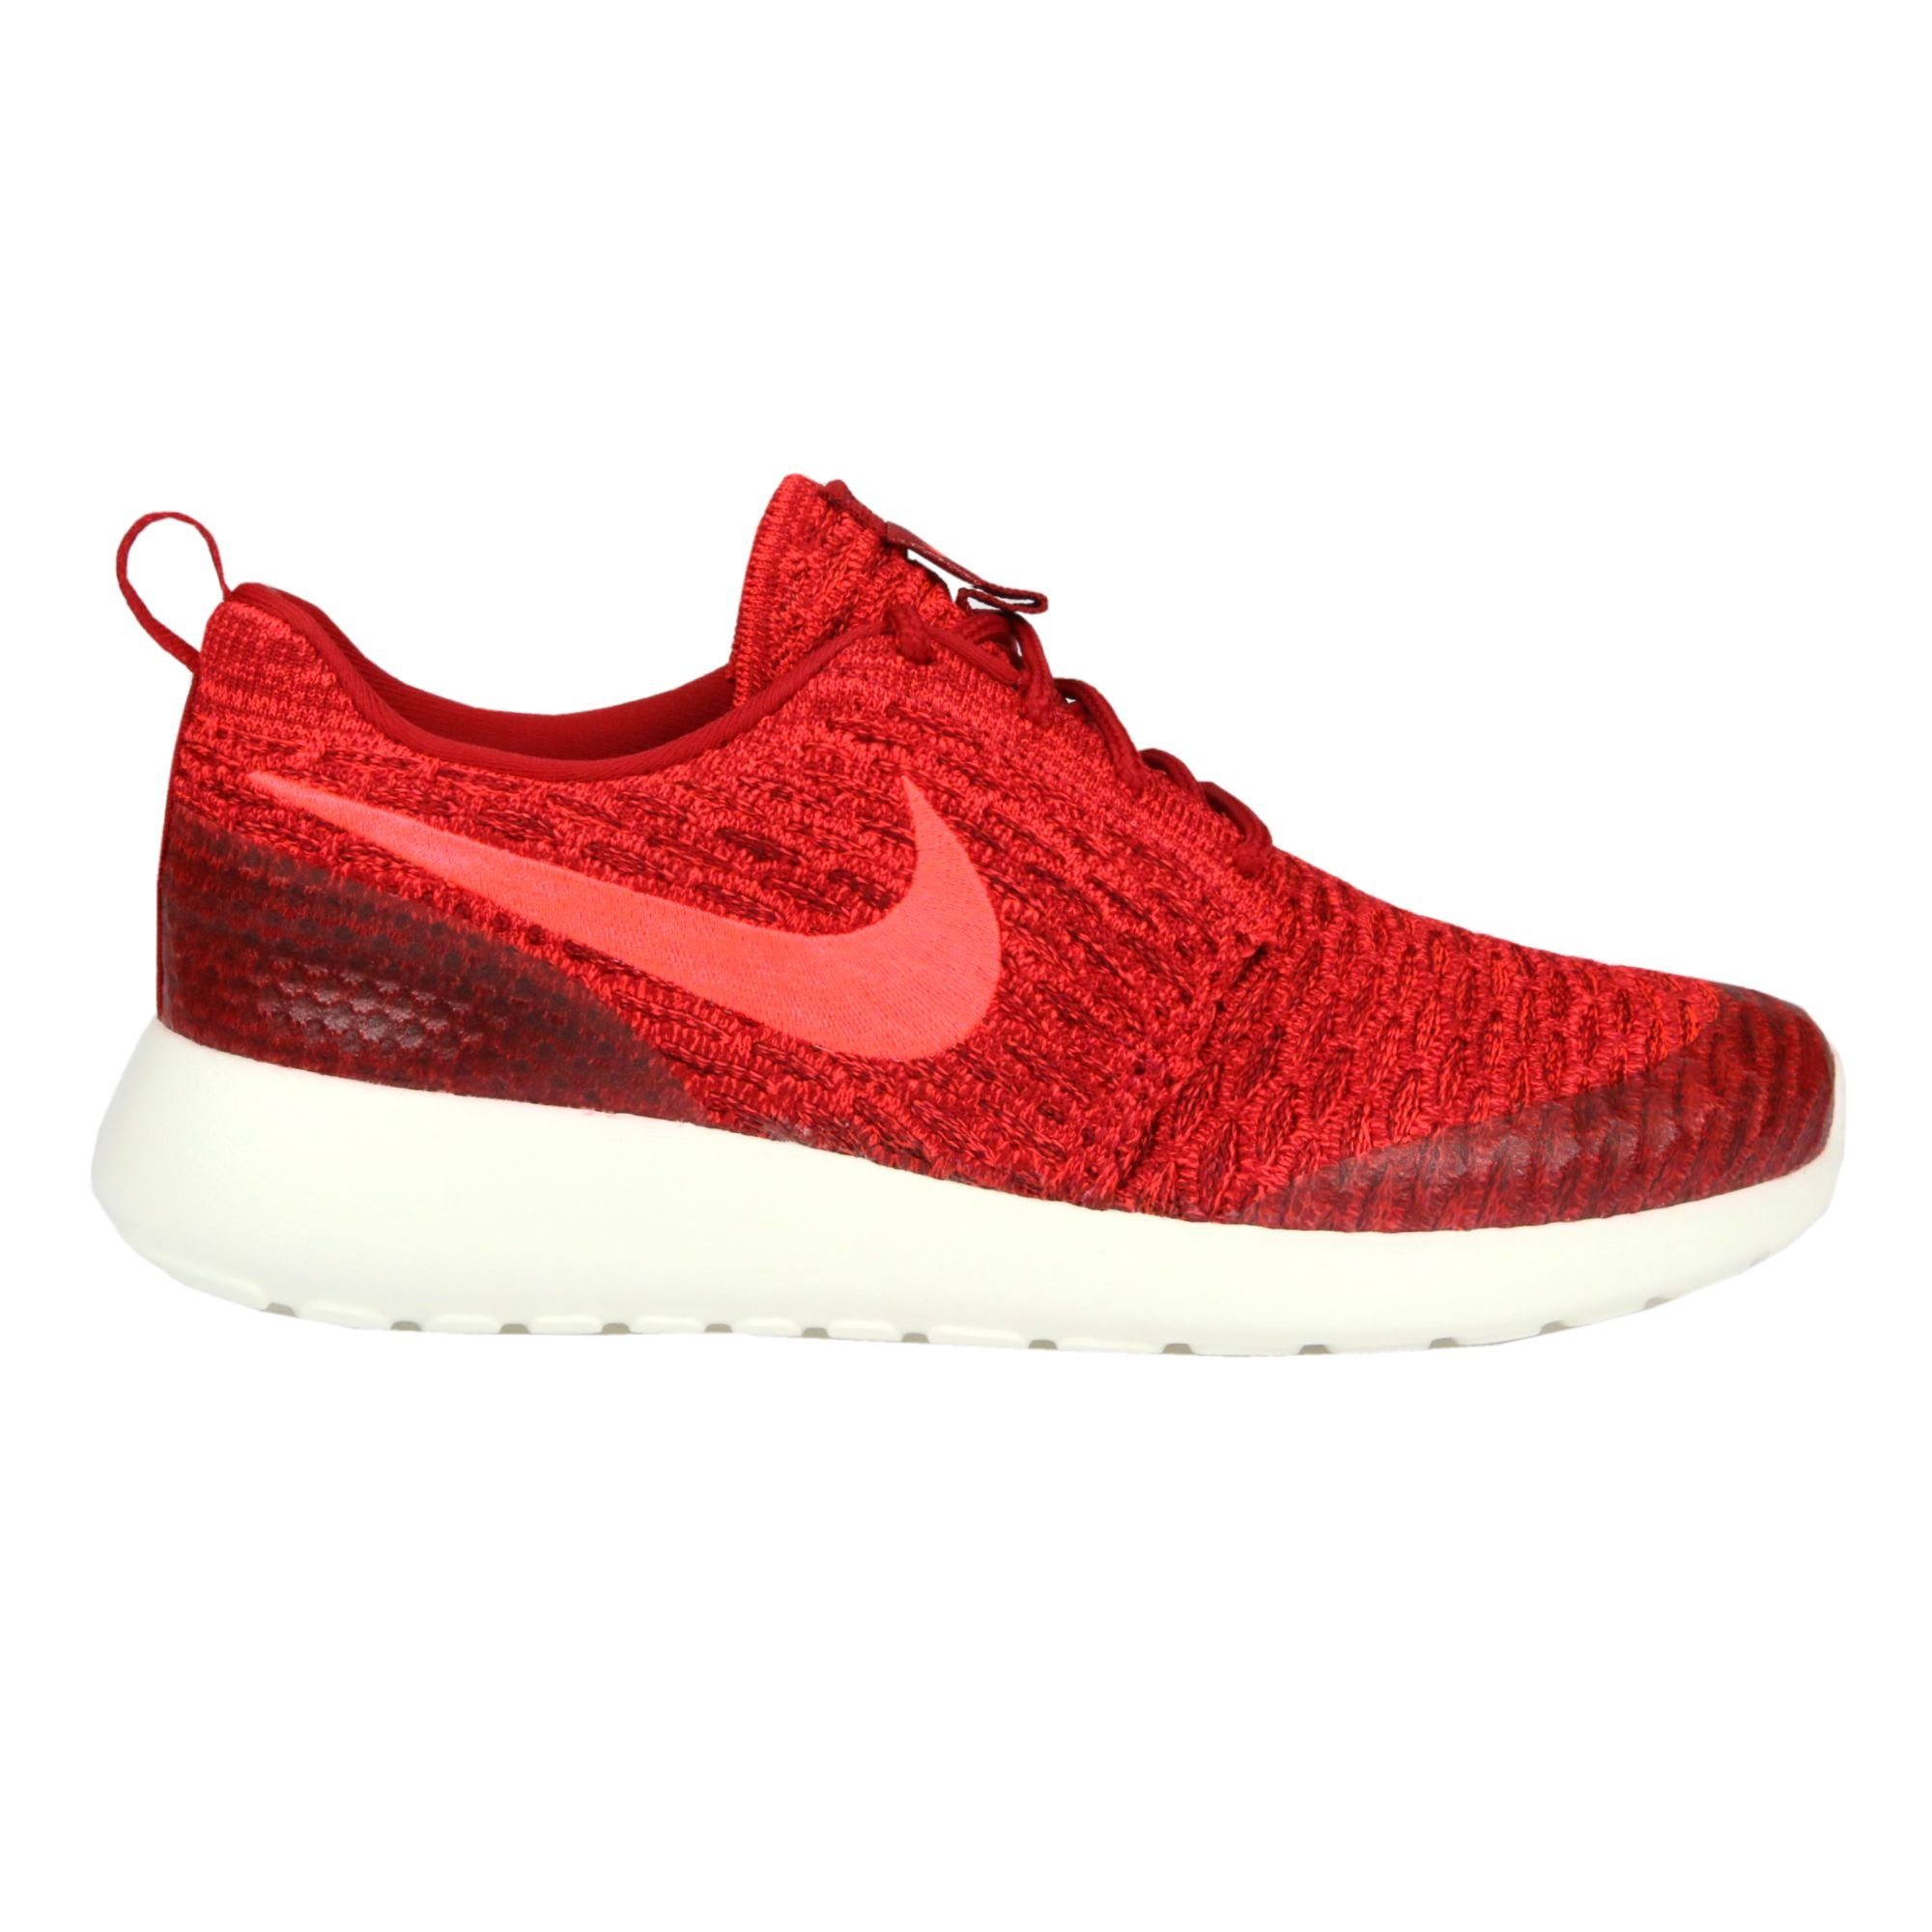 info for 94c91 217b1 Galleon - Nike Womens Roshe One Flyknit Running Shoes-Gym Red Bright Crimson -8.5